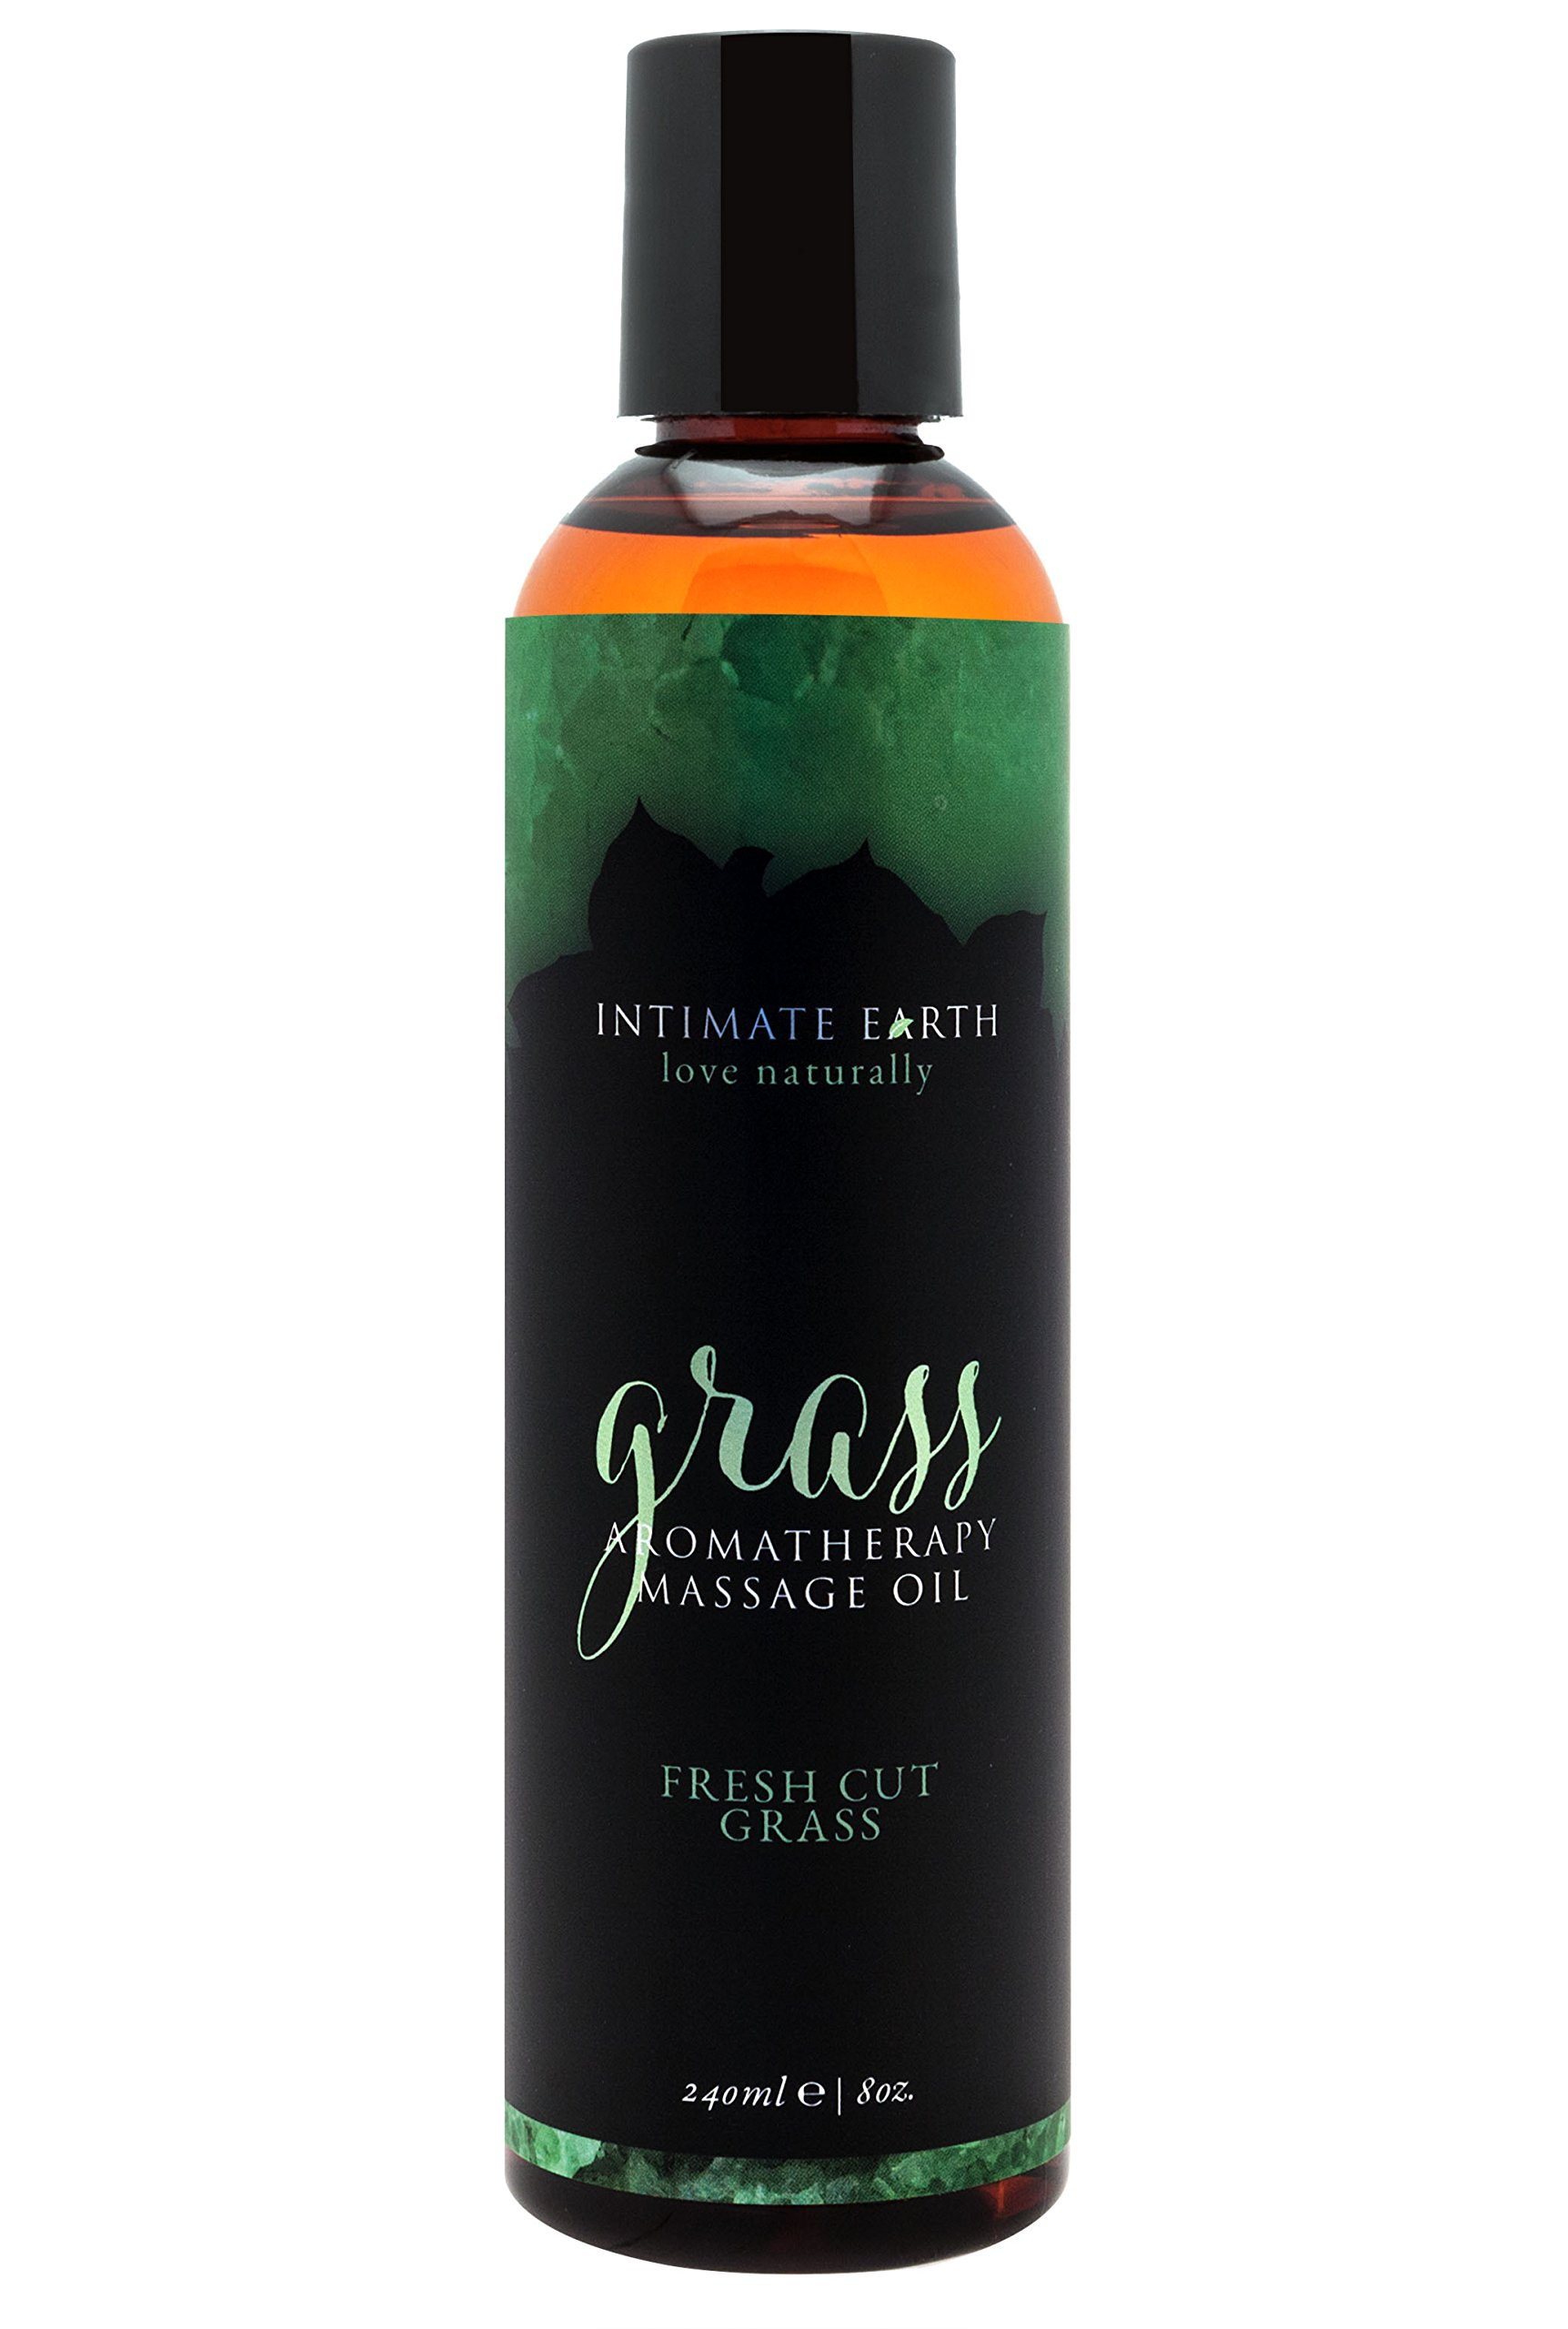 Intimate Earth Massage Oil, Grass, 8 Ounce